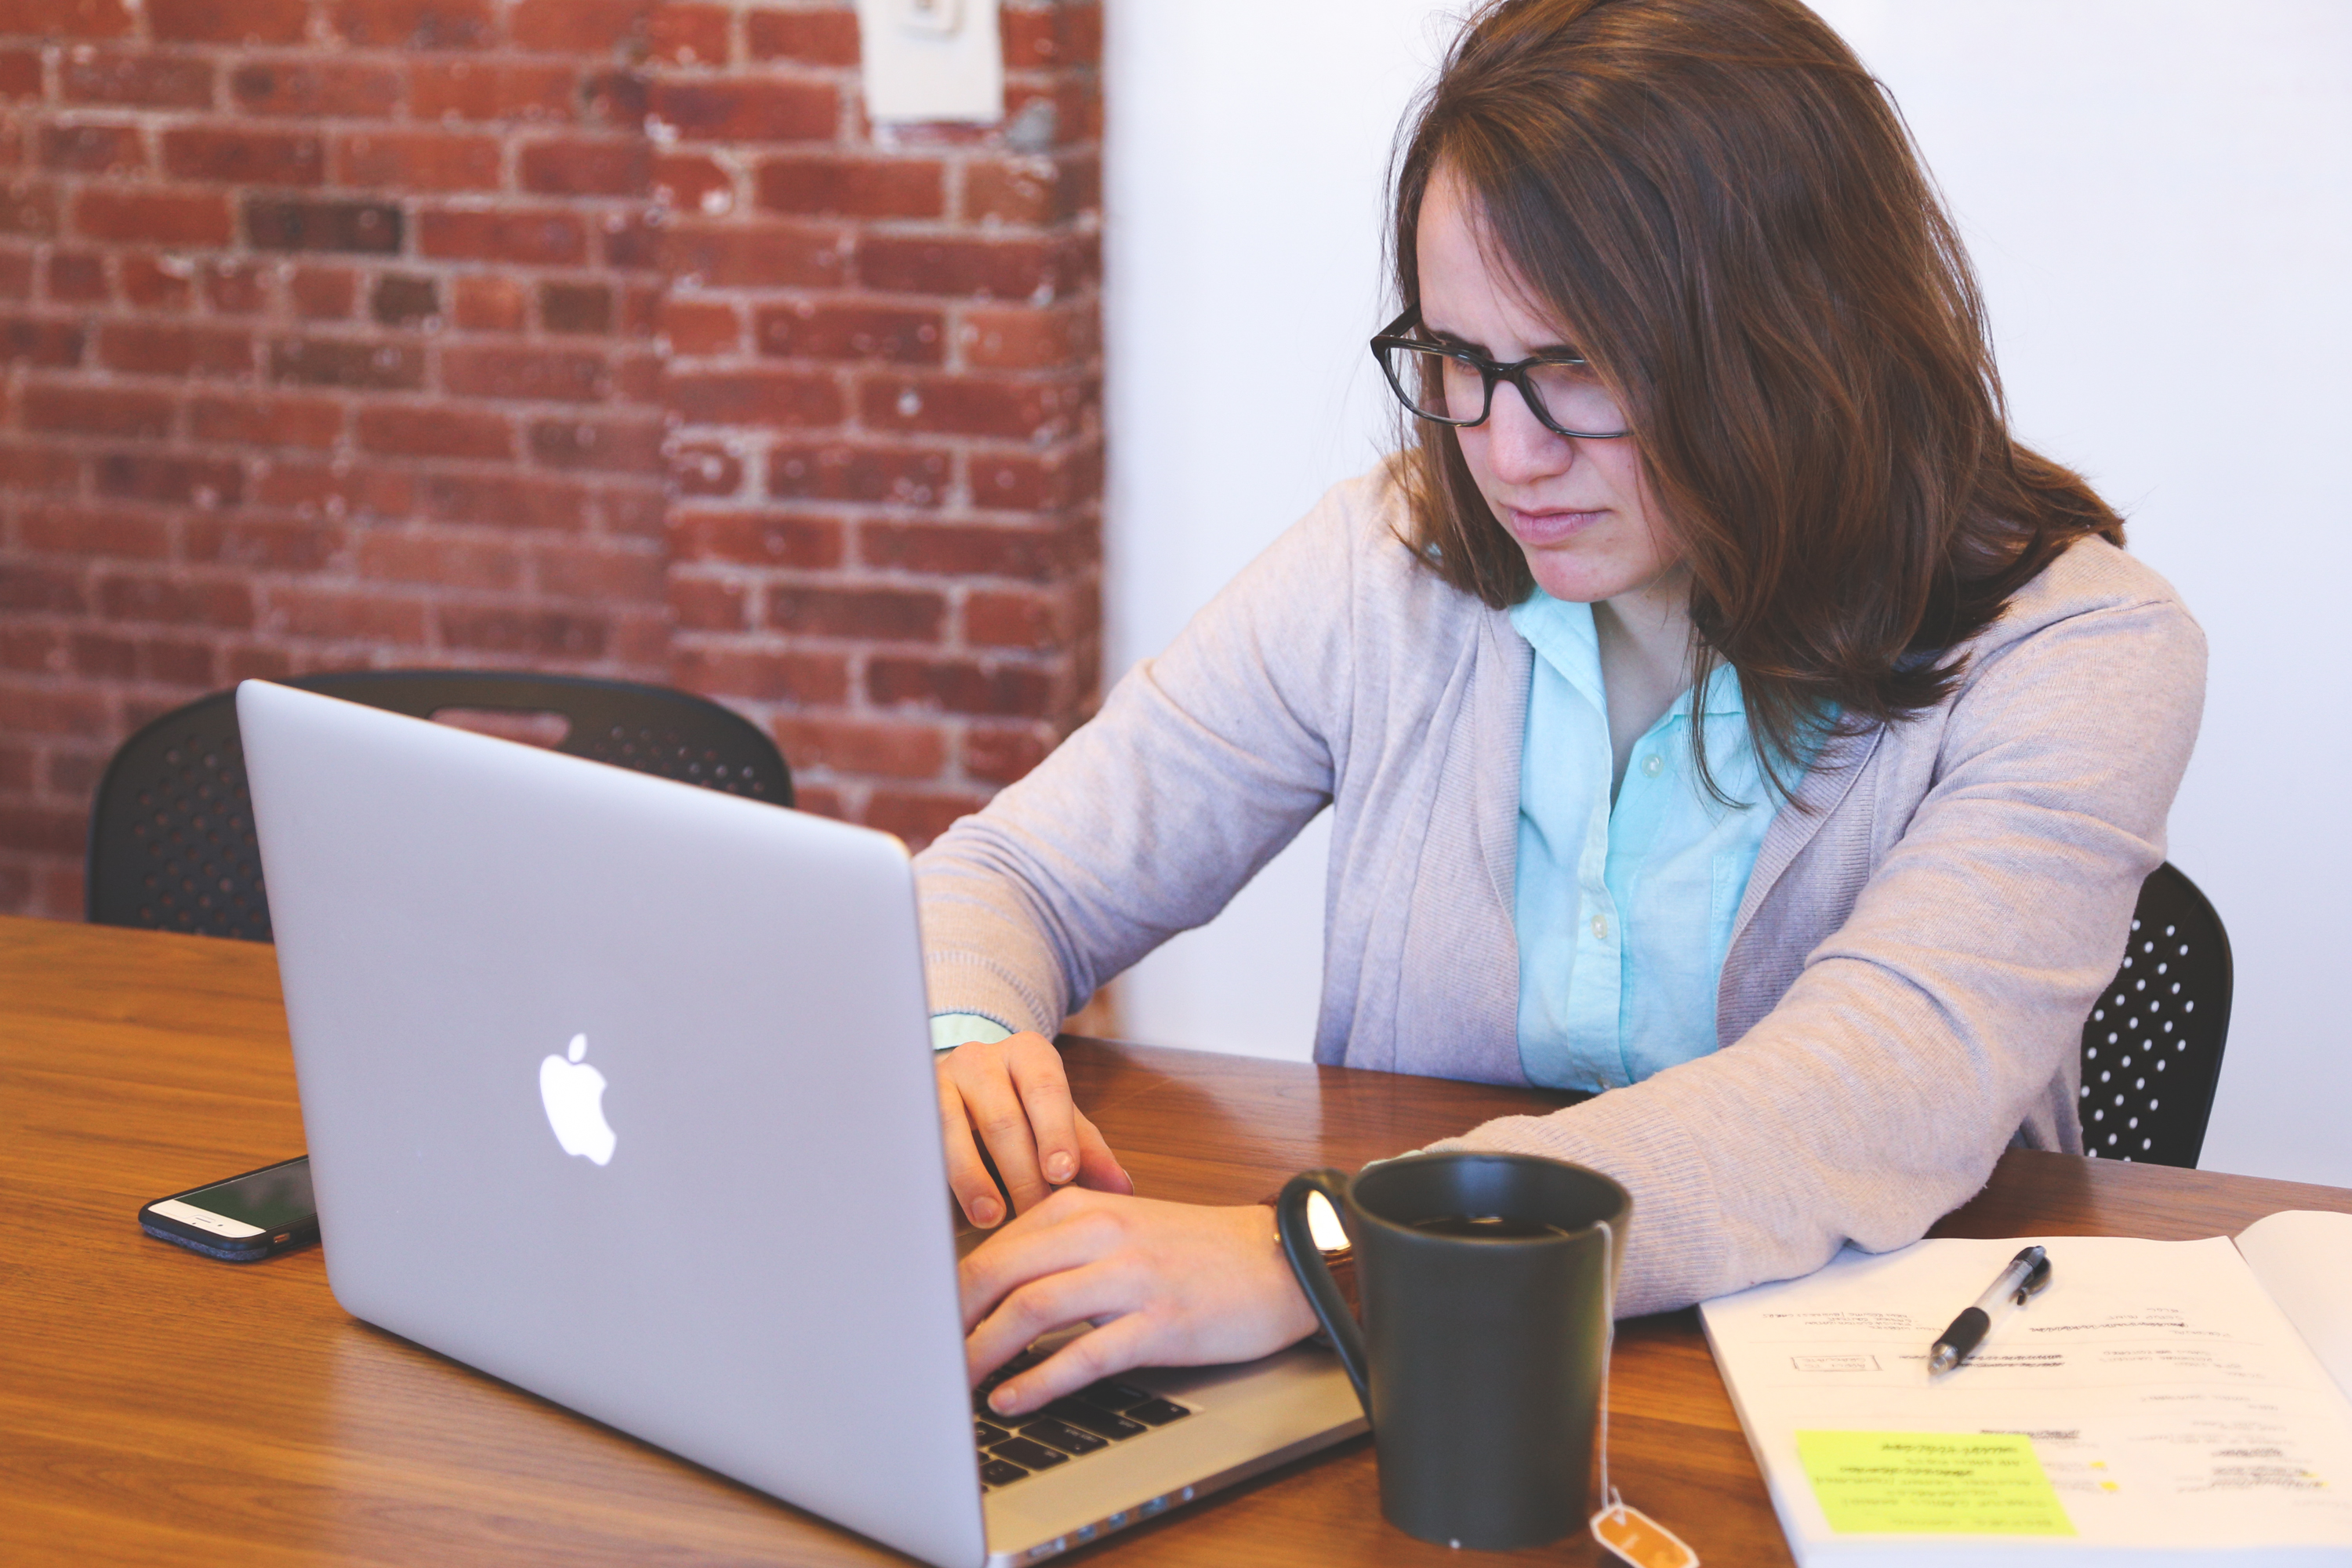 5 Easy Ways To Make Email Less Stressful